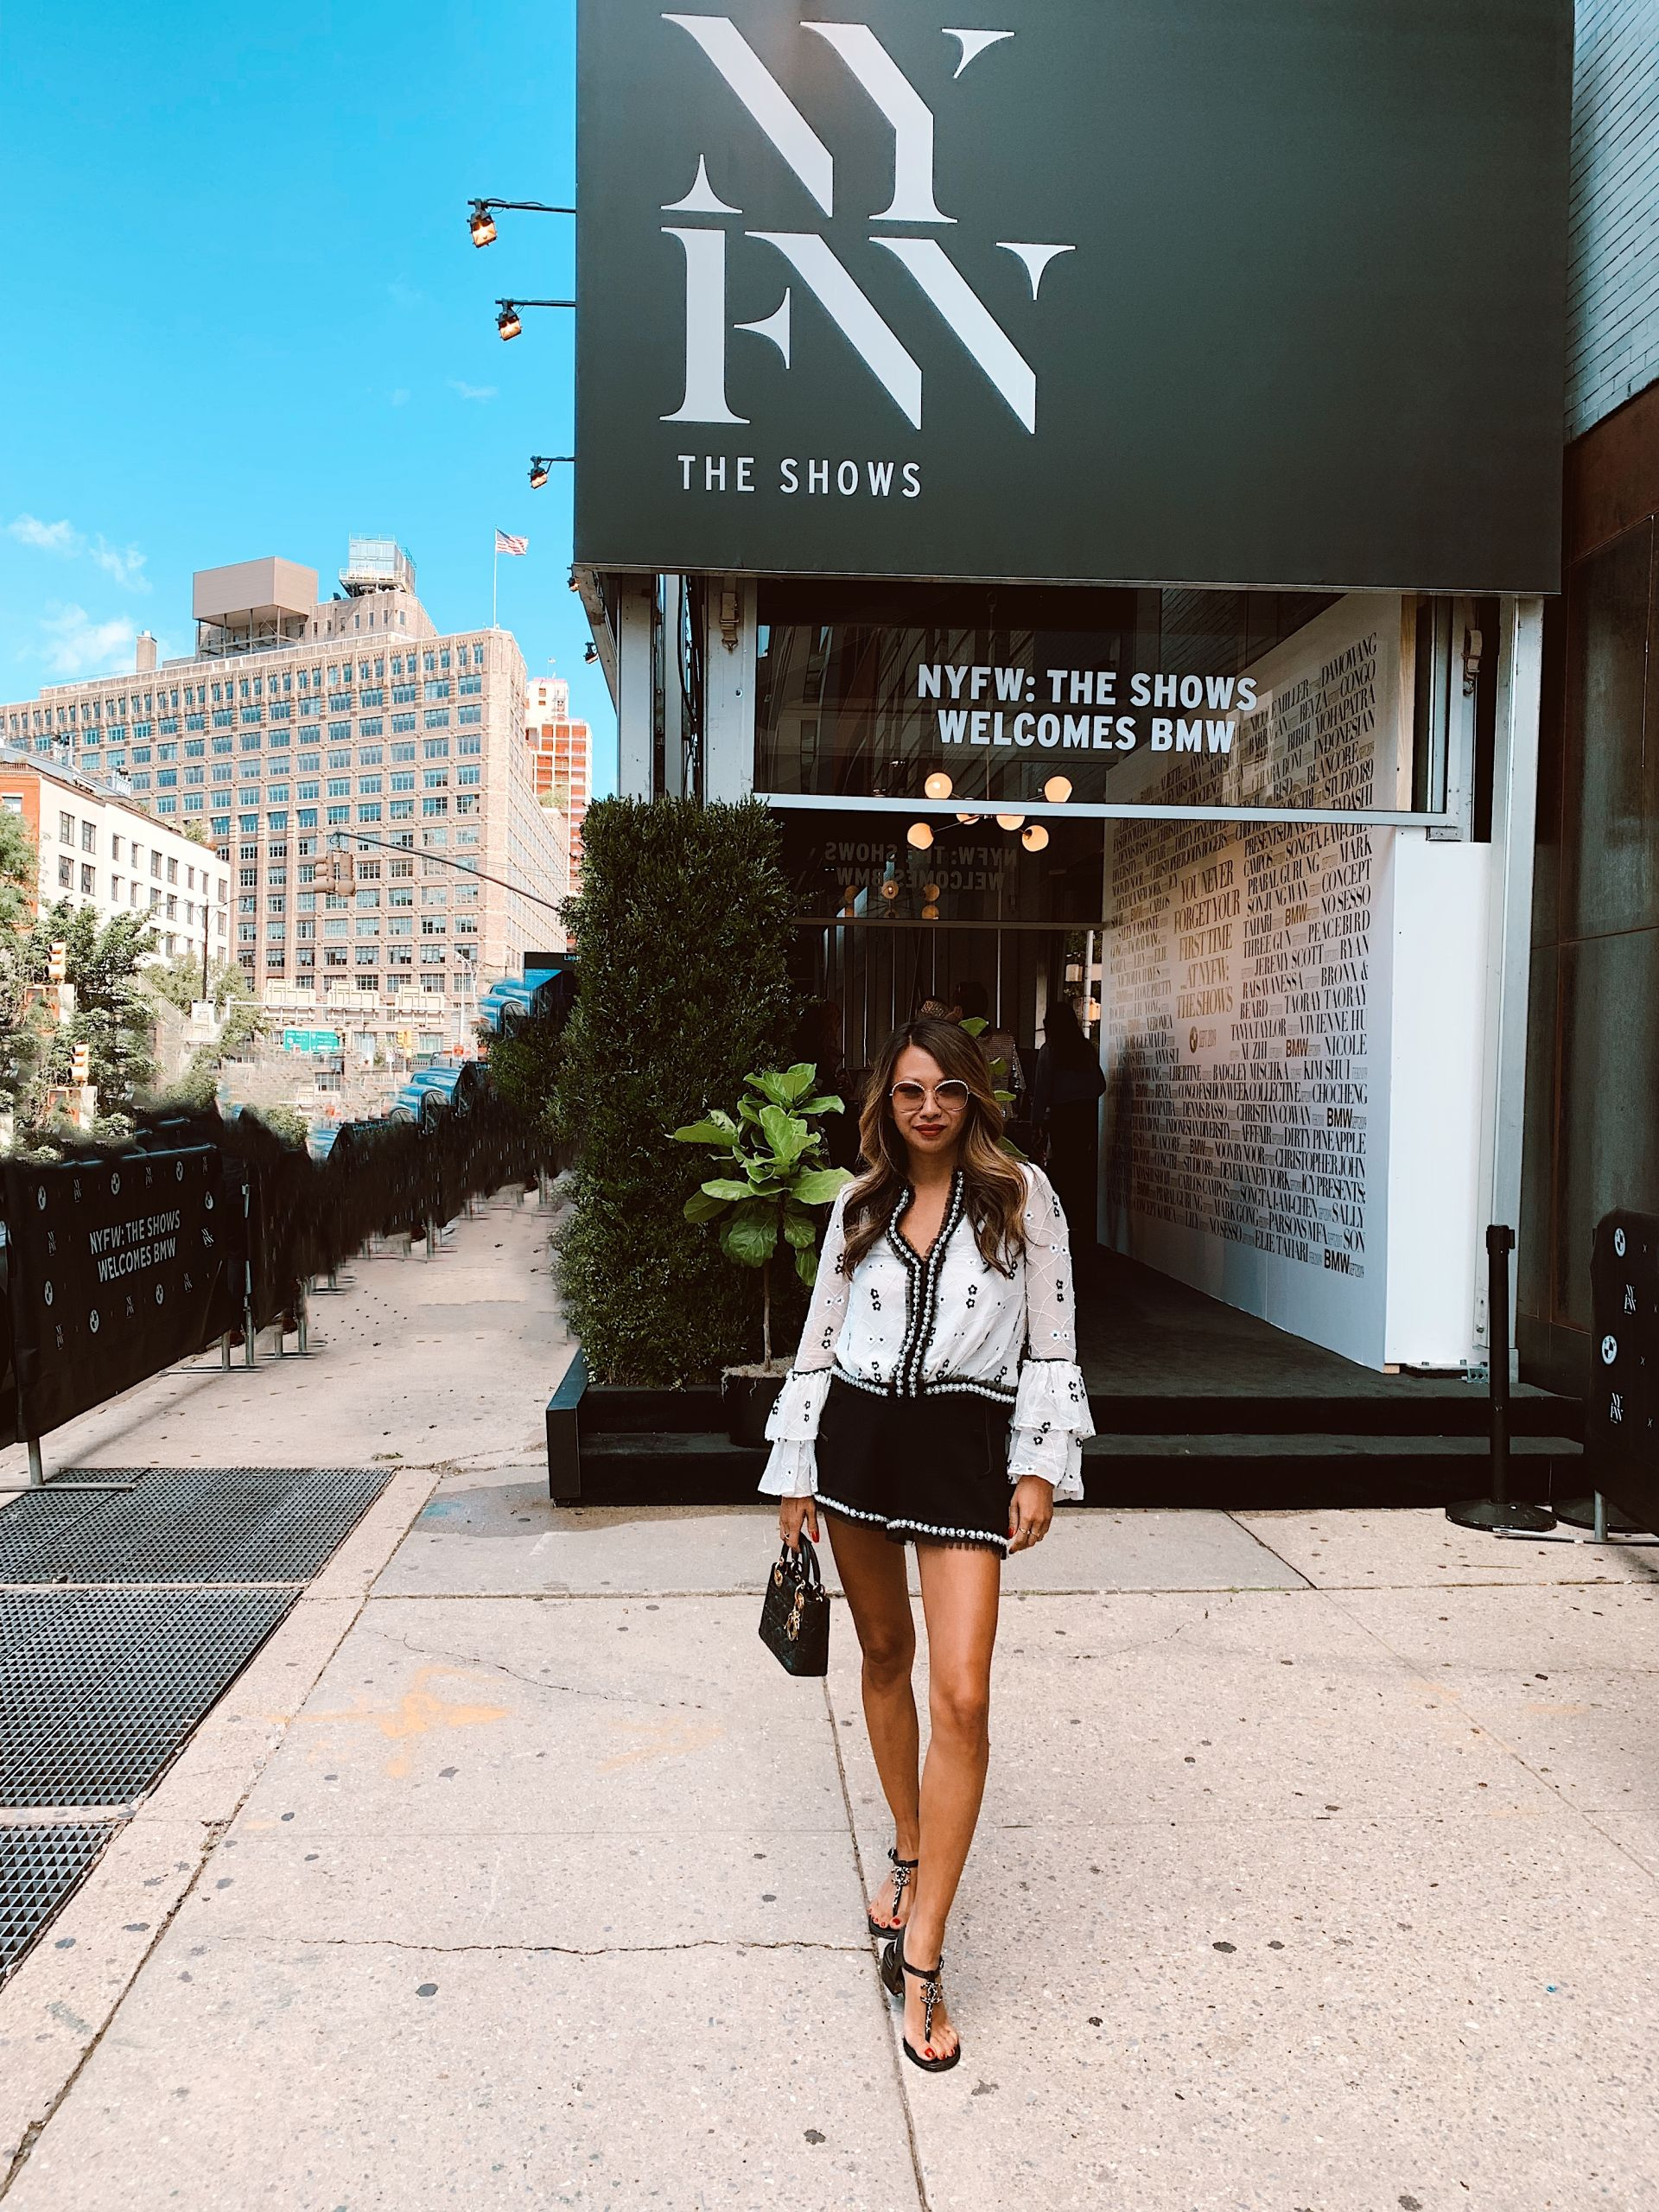 NYFW, NYFW 2019, New York fashion week 2019, New York fashion week as a blogger, truths about NYFW, fashion week, street style, New York style, outfit ideas, blogger, travel blogger, advice from a blogger, blogging advice, blogging tips, influencer tips, influencer advice, tips from an influencer on New York fashion week, fashion blogger, Jennifer woman, Red Soles and Red Wine, Alexis Floral Beaded Ruffled Tulle-Trim Blouse, and Kendrick Imitation Pearl-Trim A-Line Shorts